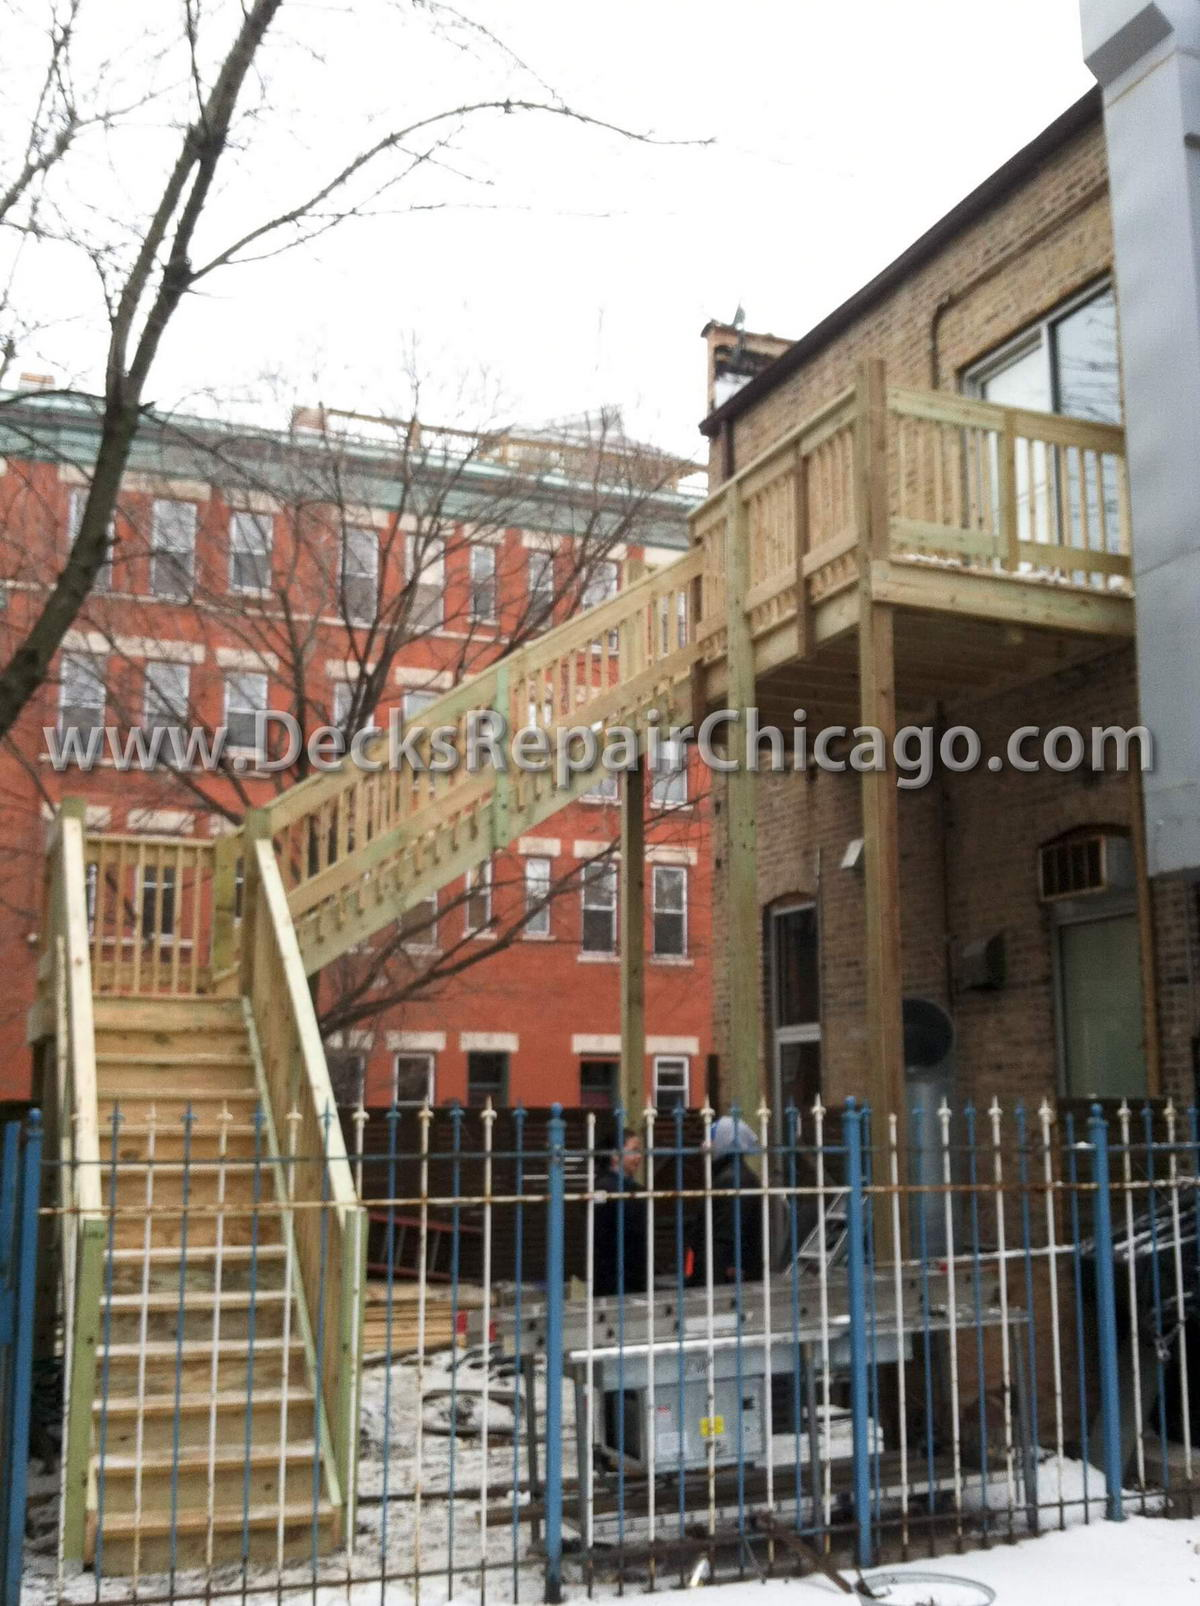 decks-repair-chicago-buff-construction-16_resize.jpg